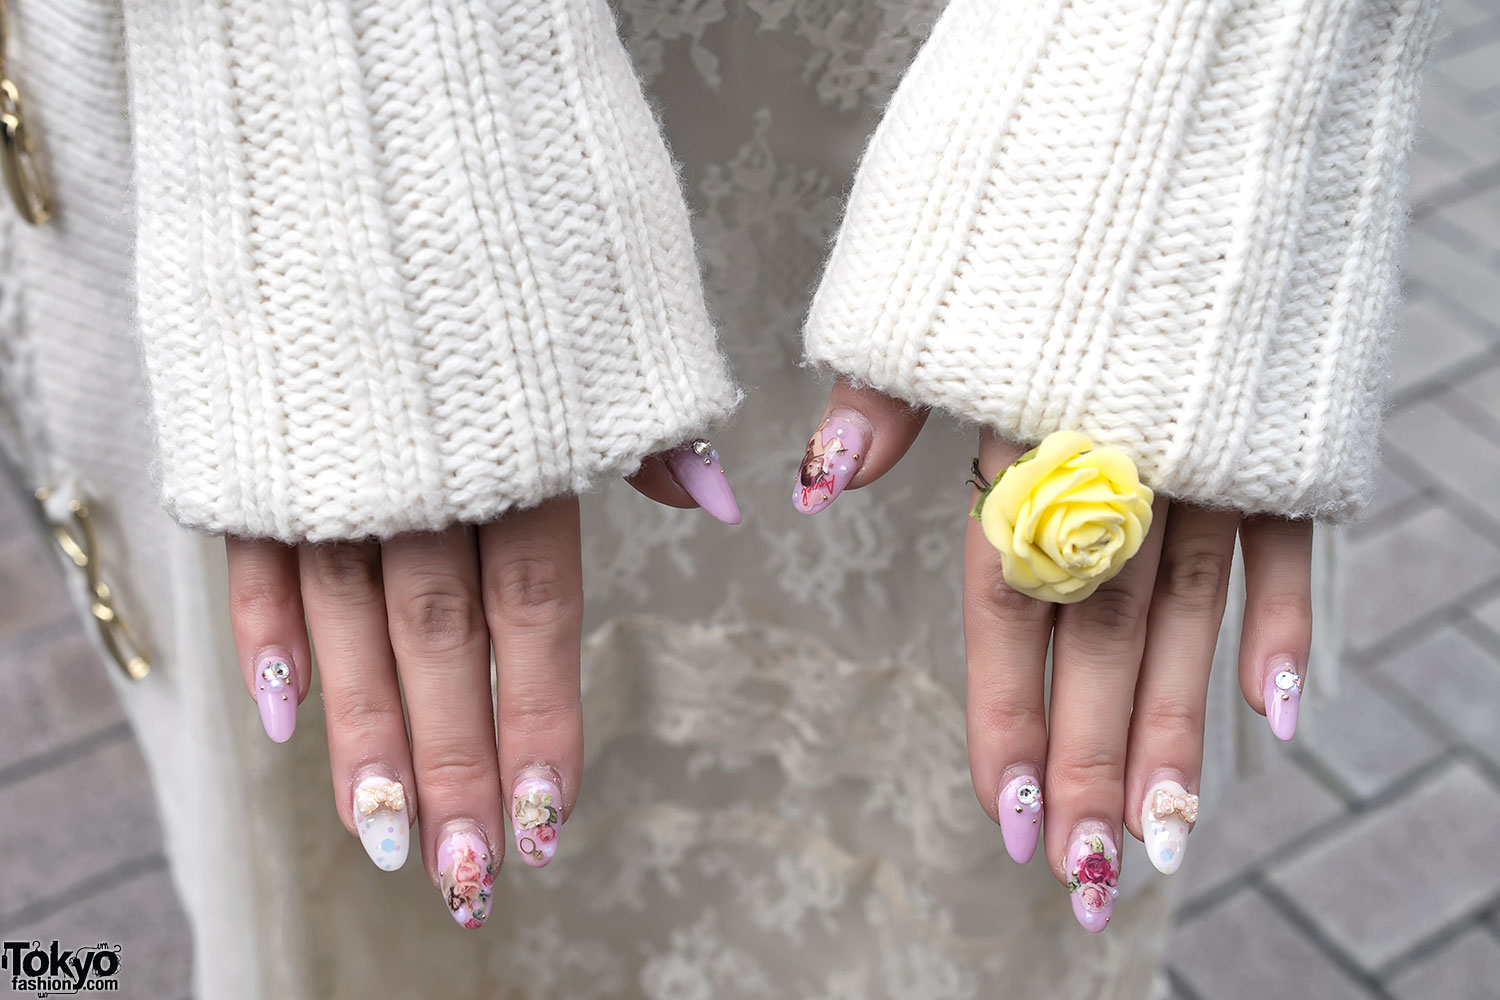 Rose ring japanese angel nail art tokyo fashion news rose ring japanese angel nail art prinsesfo Image collections